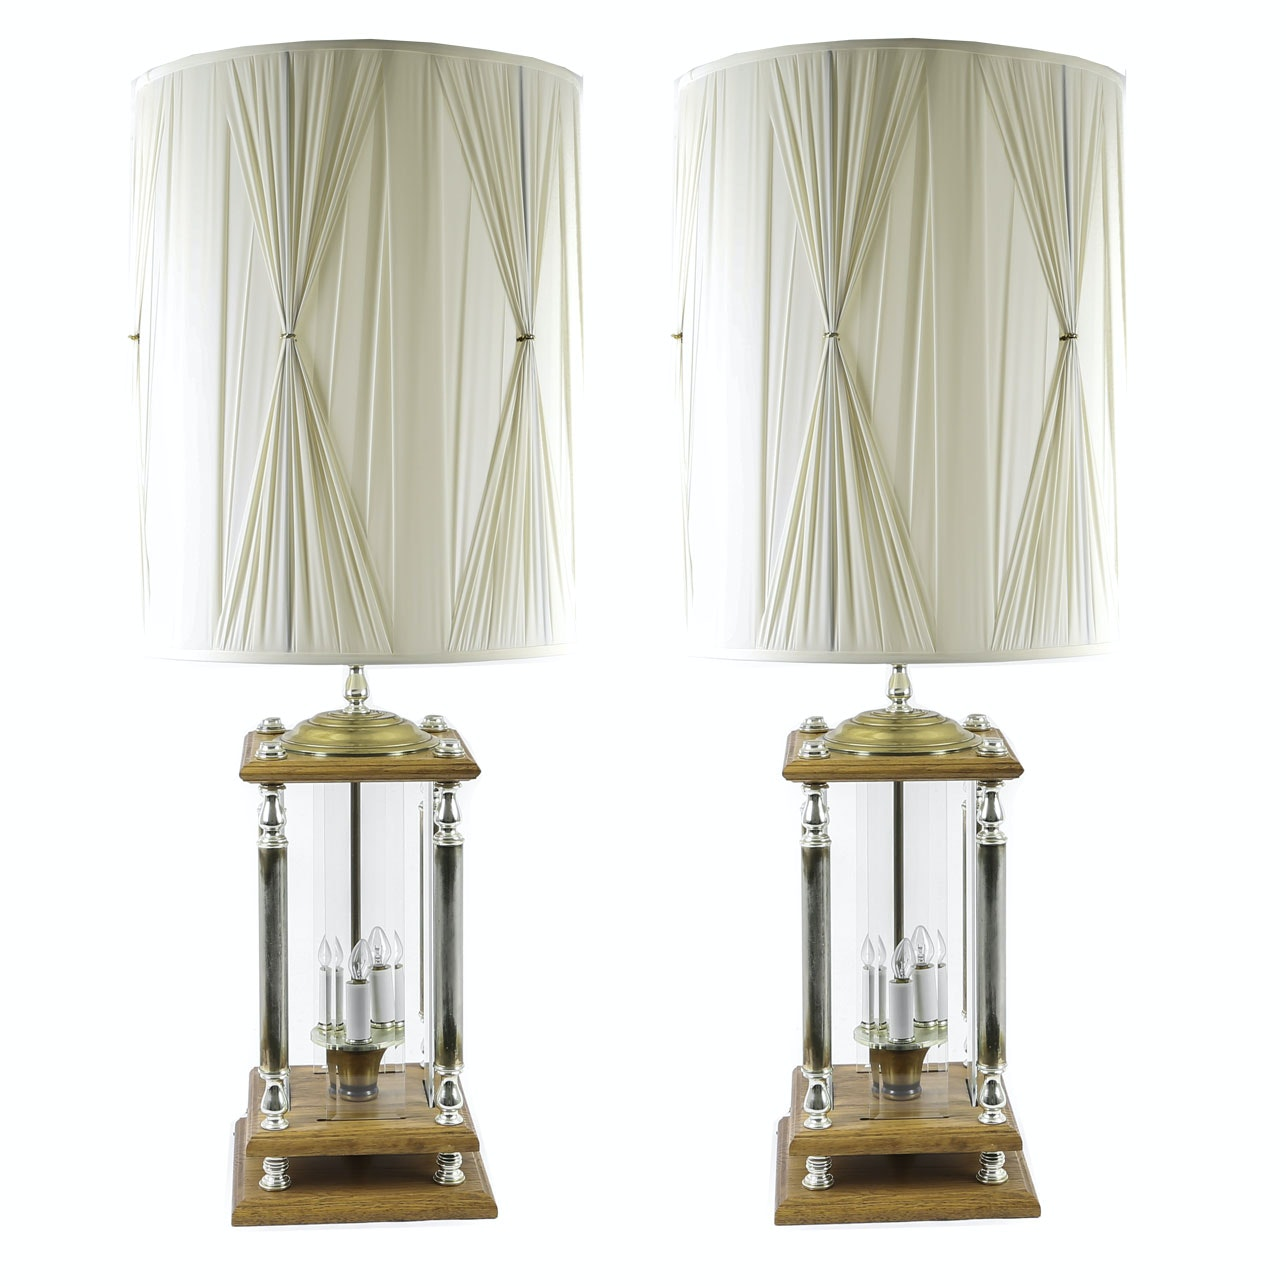 Mid Century Wood and Glass Panel Table Lamps with Decorative Shades